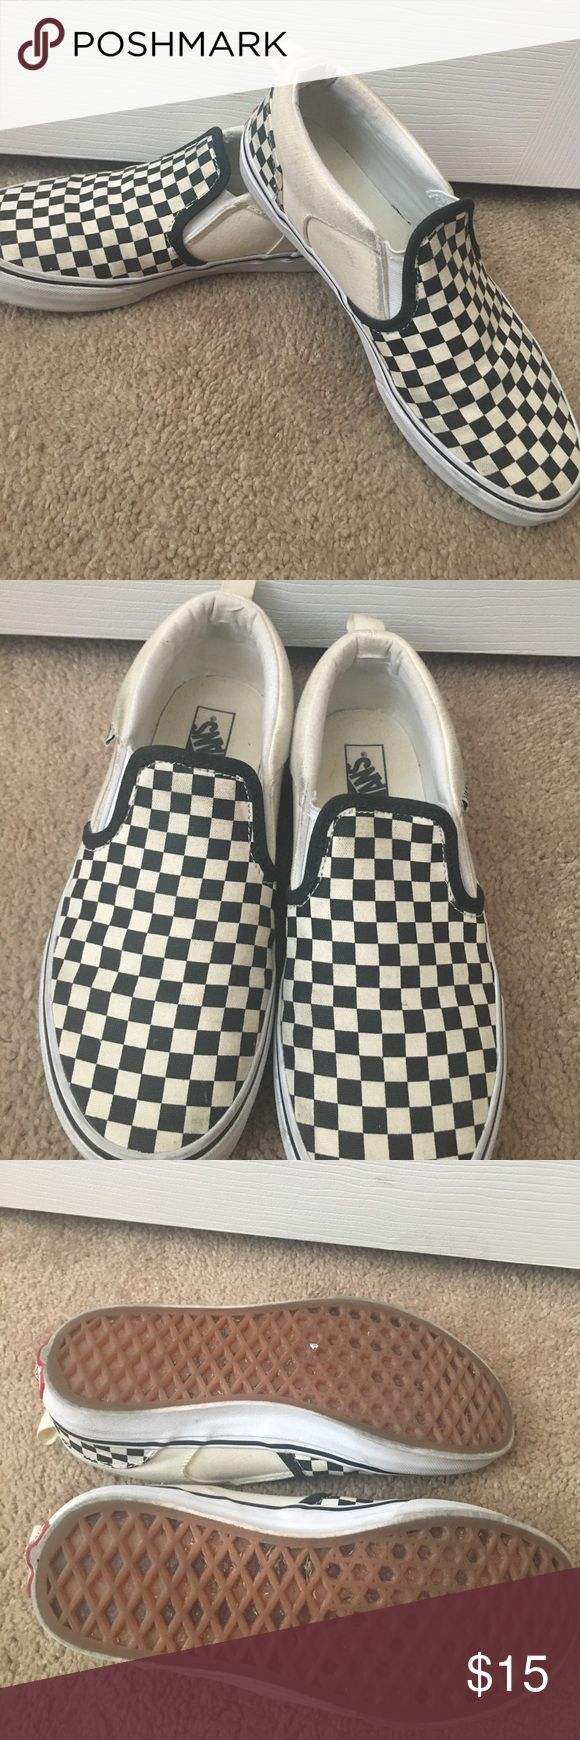 Checkered vans🌸MOTHER'S DAY SALE🌸 Used but in great condition just some scuff marks as seen in pictures Vans Shoes Sneakers